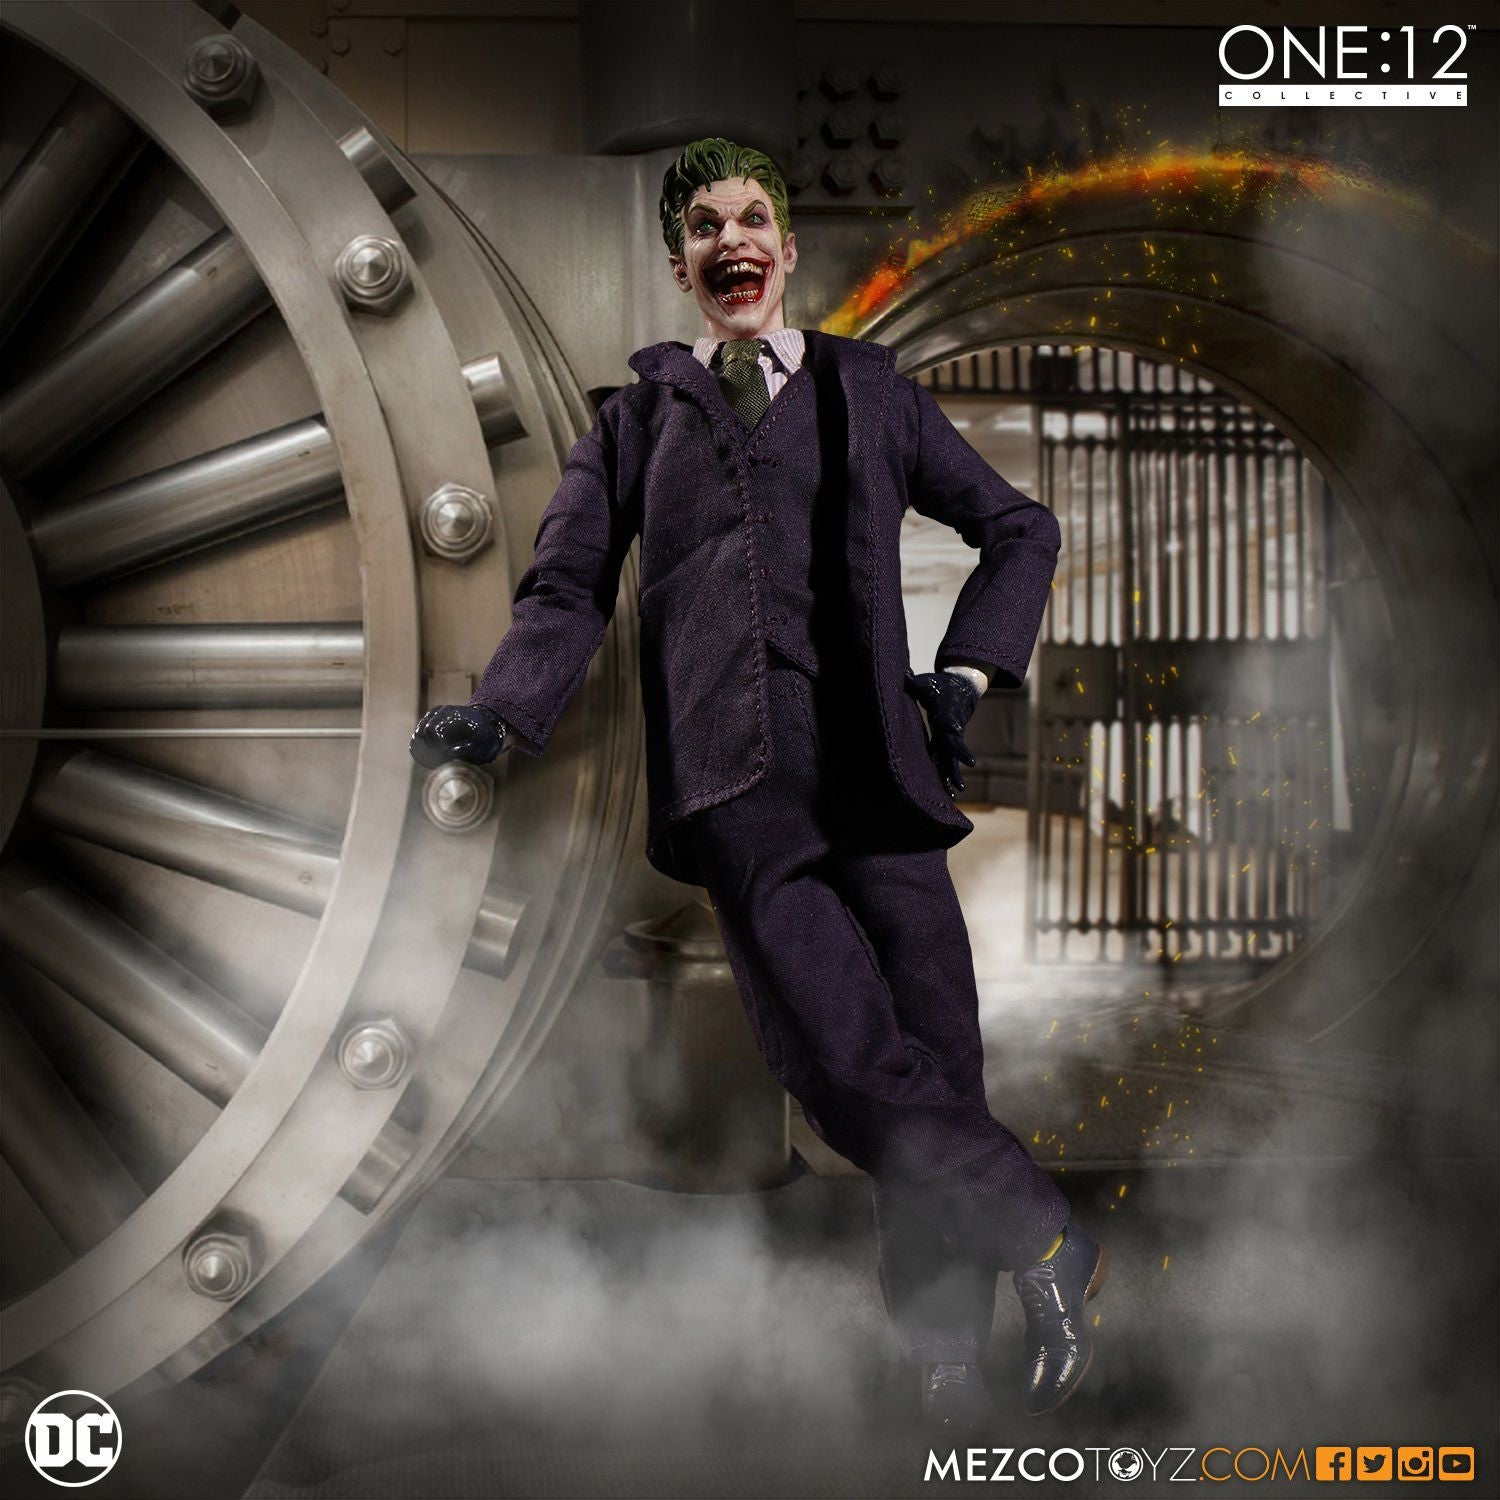 Mezco - One:12 Collective - The Joker - Marvelous Toys - 4